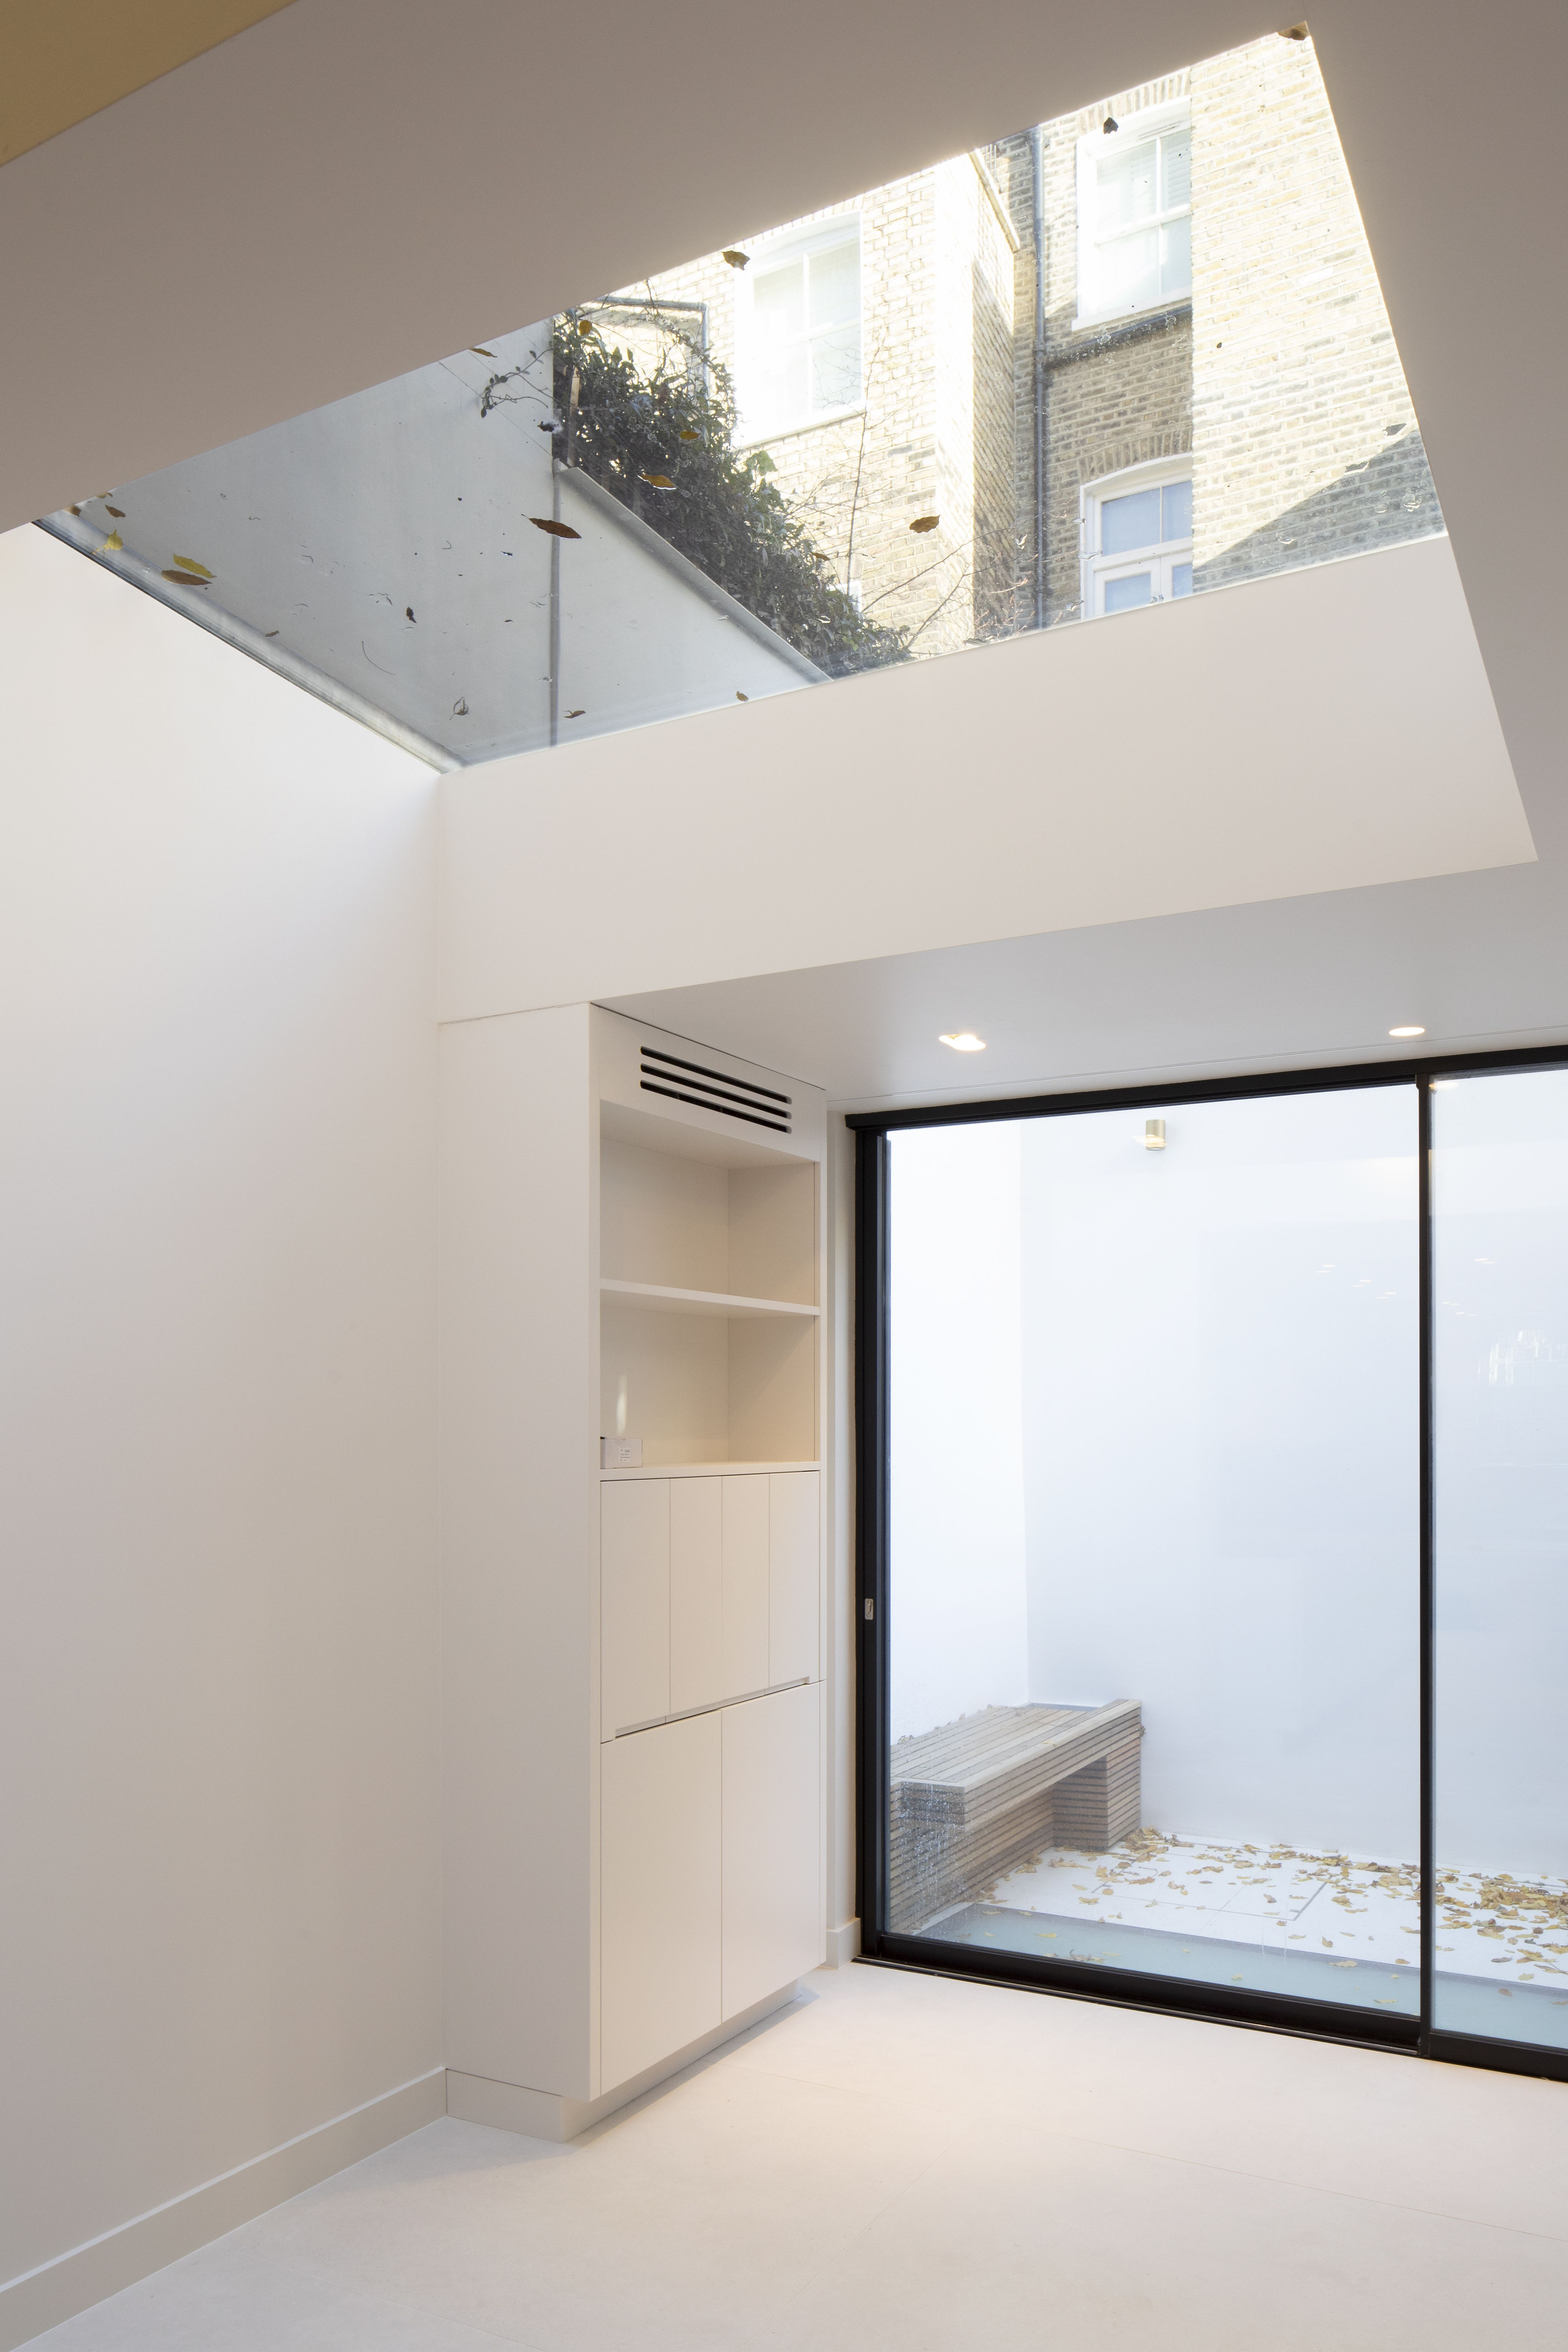 Chelsea House By Ramses Frederickx Design Using Maxlight Glazing Chelsea House Design House